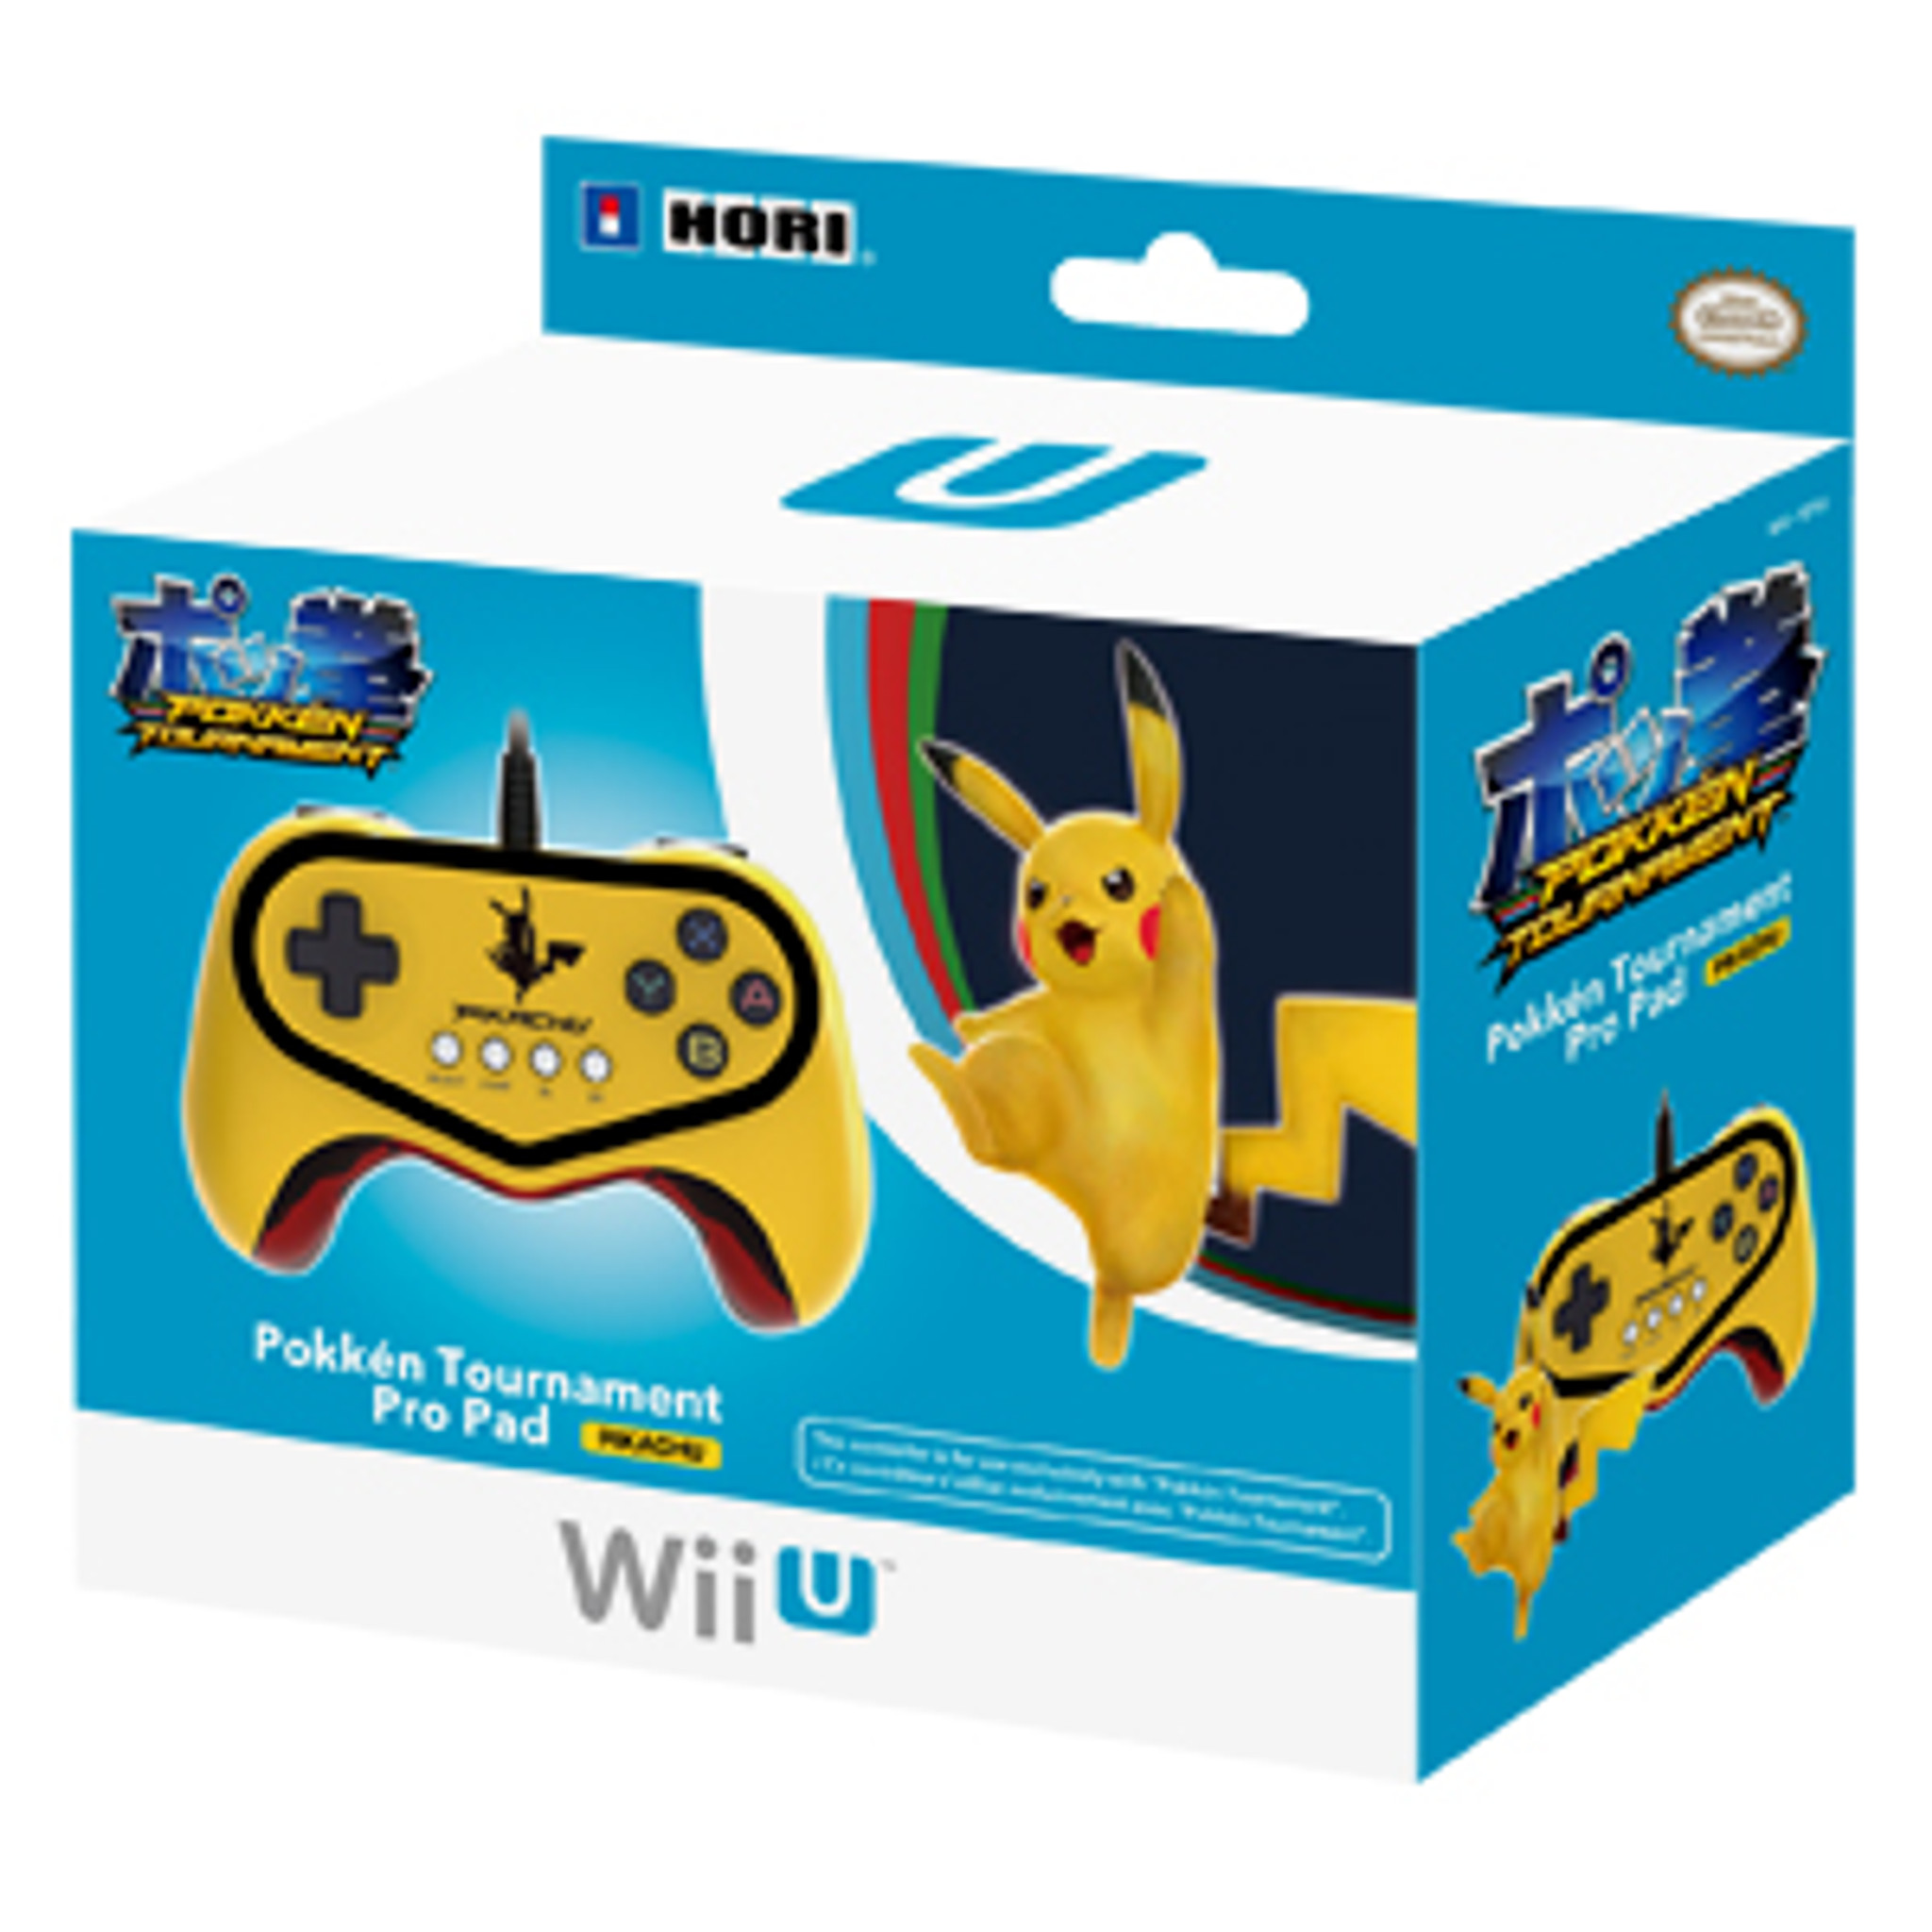 Pokken Tournament Pro Pad Limited Edition Controller for Nintendo Wii U (Pikachu Version)